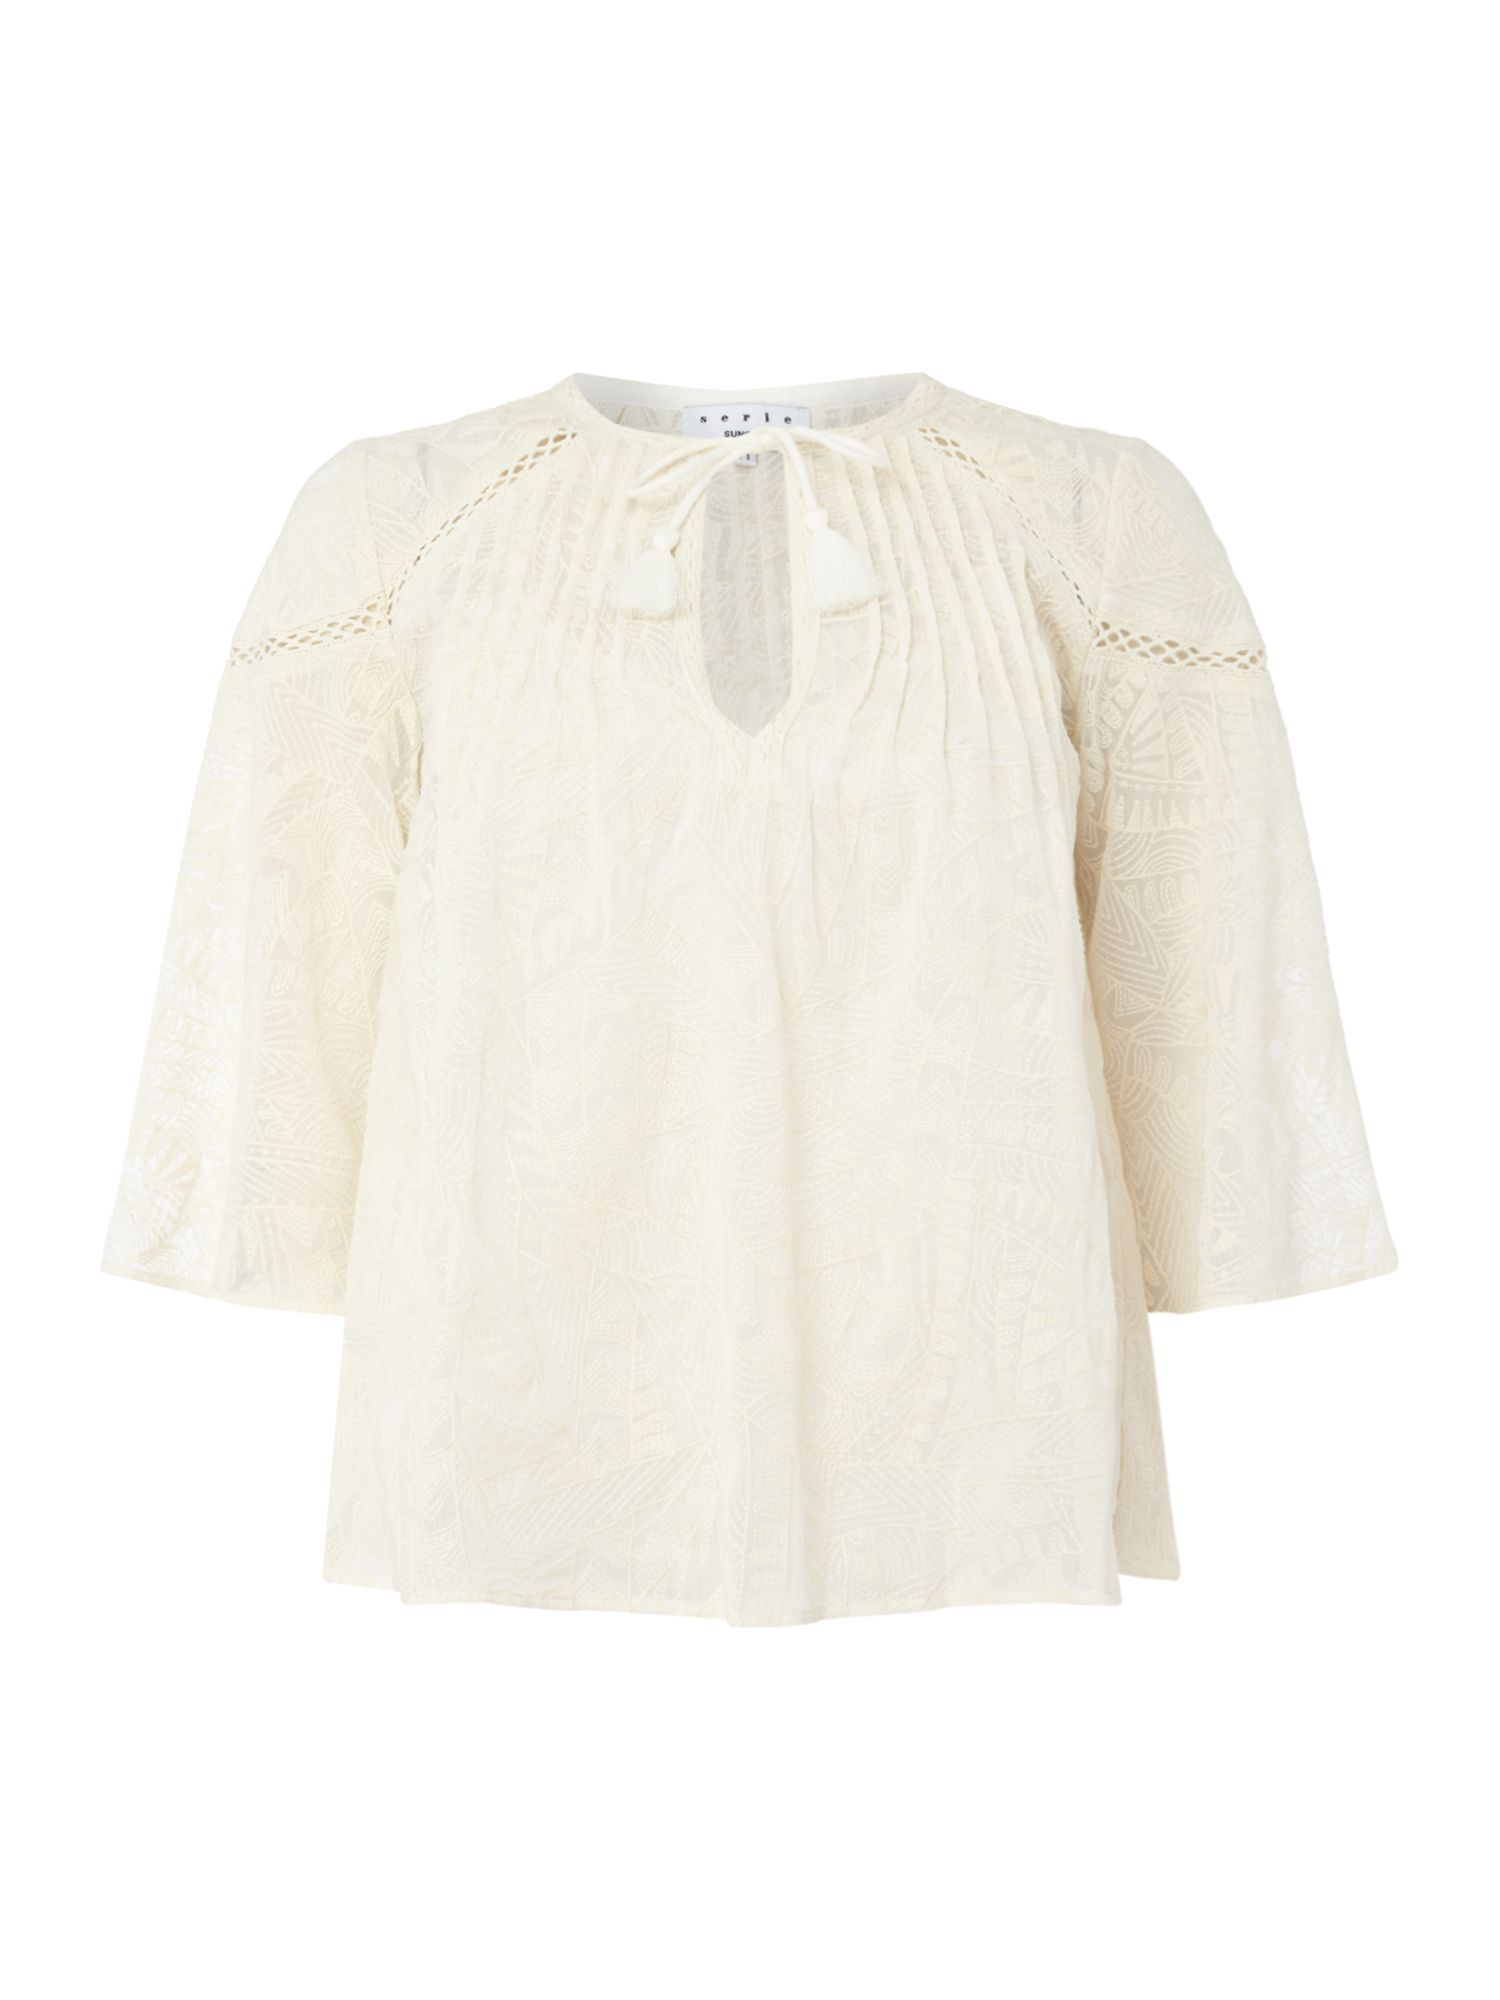 Suncoo Luke Embriodered Blouse, Cream